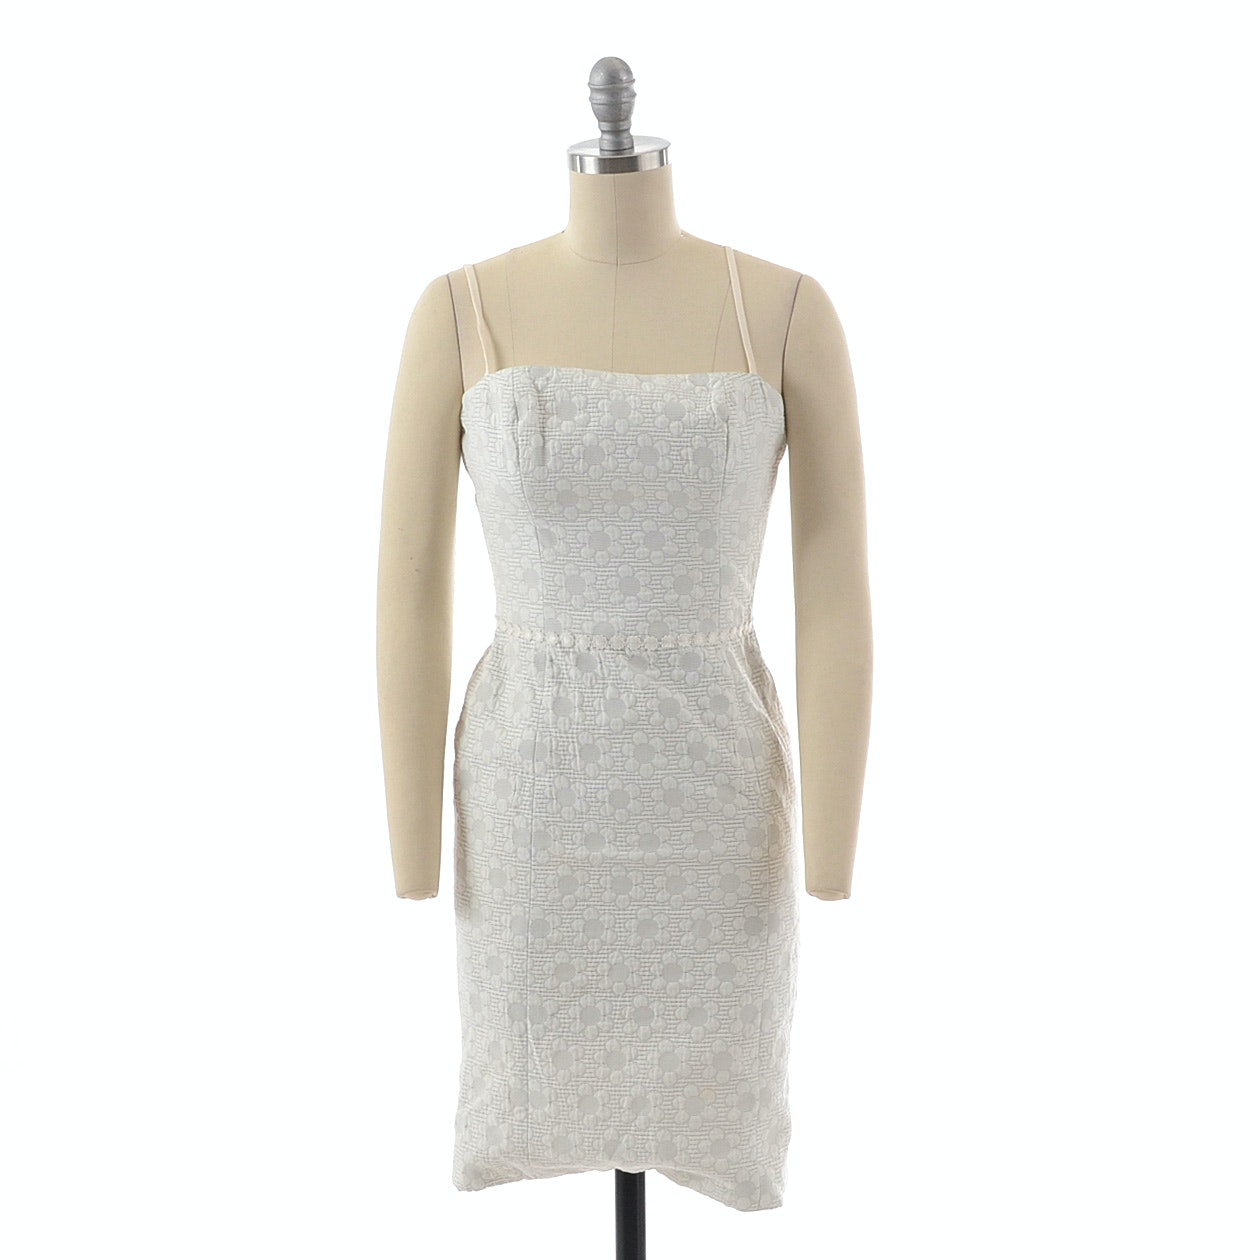 Luca Luca White Embossed Daisy Print Sleeveless Dress with Ribbon Lace